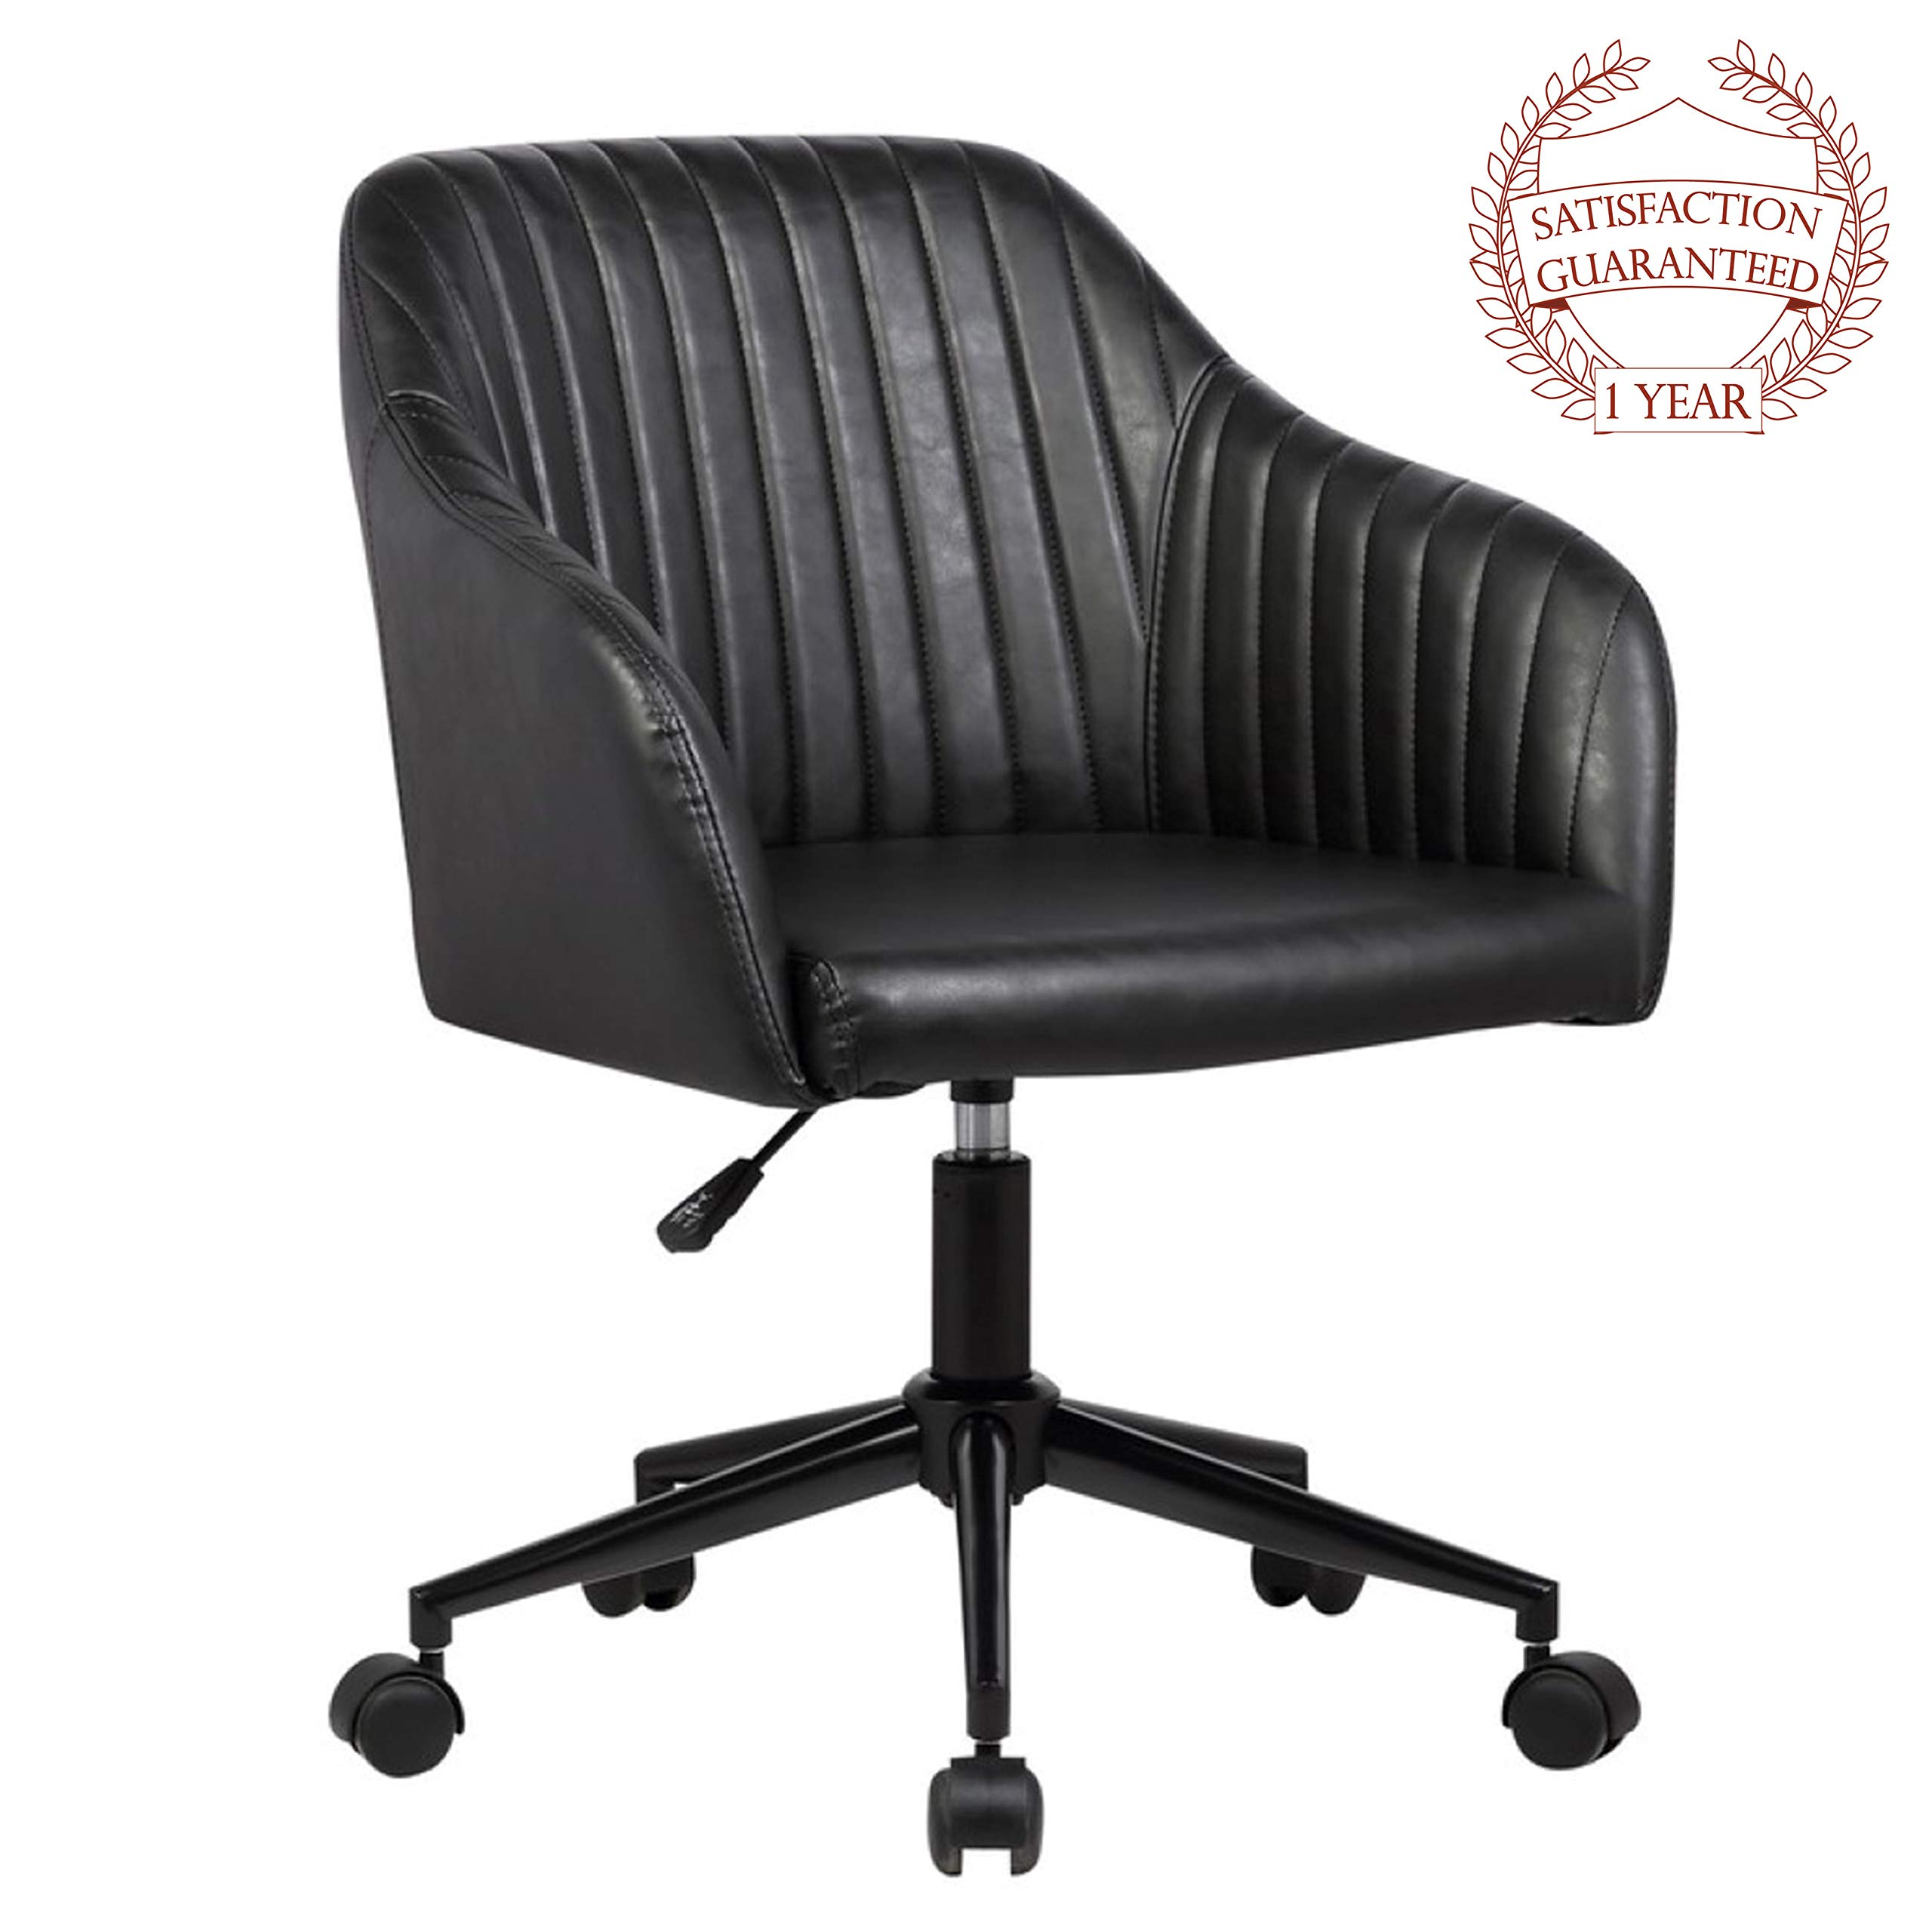 Porthos Madison Desk Chair   Item# 11720